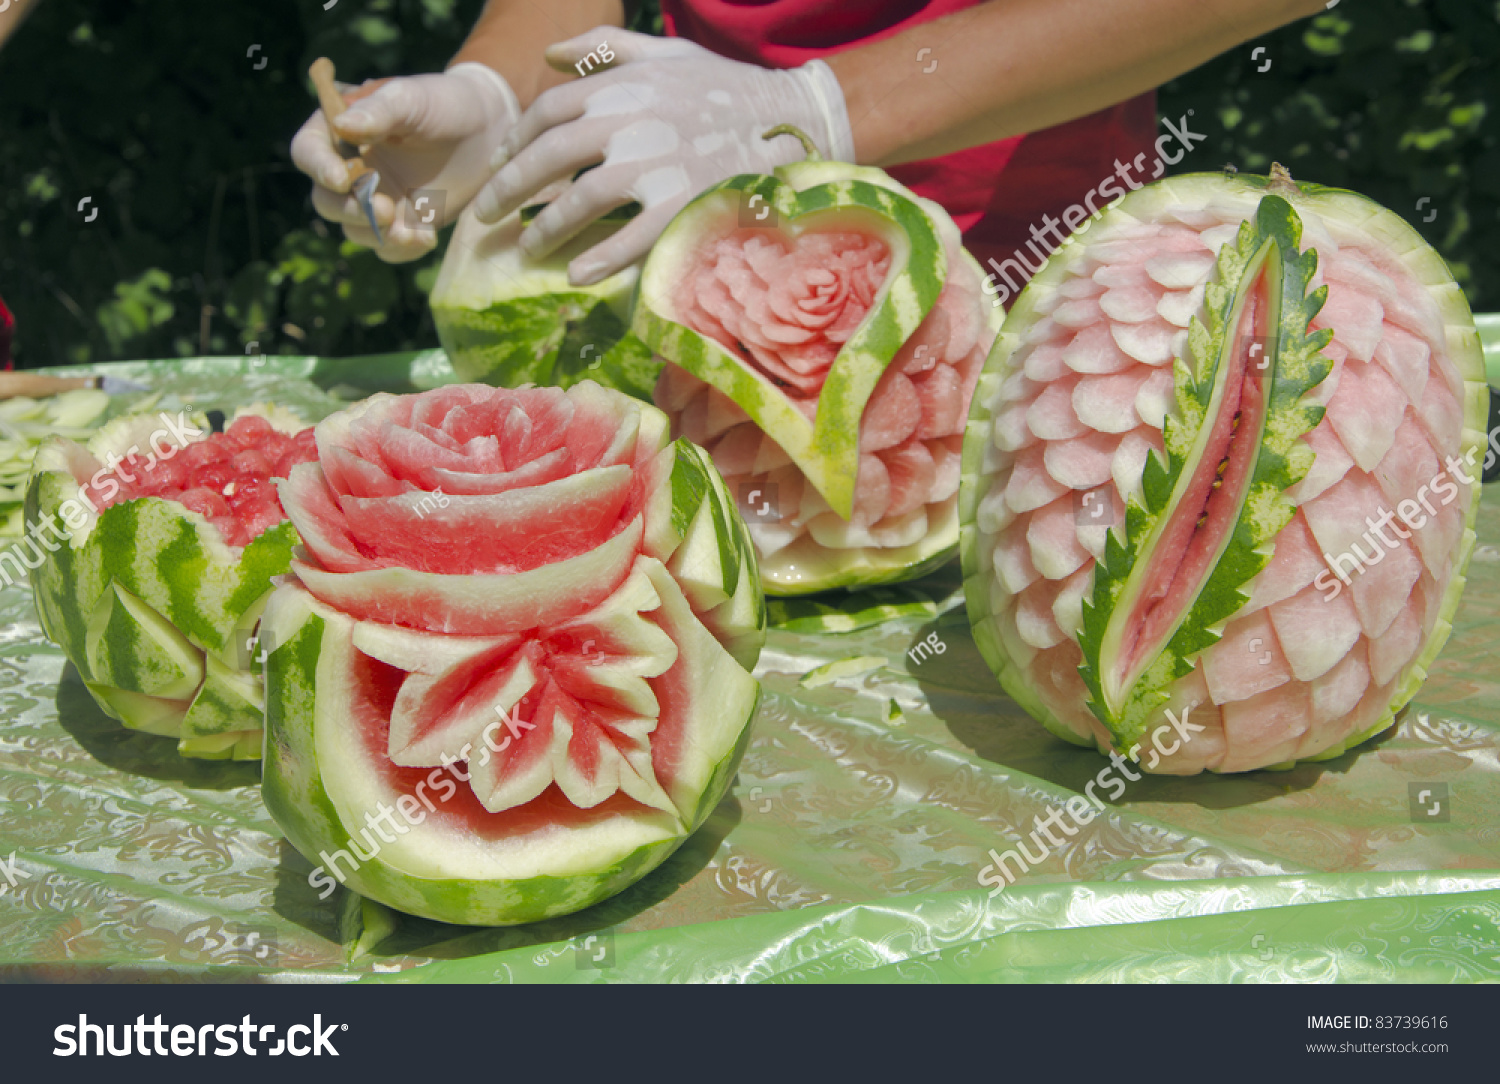 Watermelon carving festival stock photo edit now